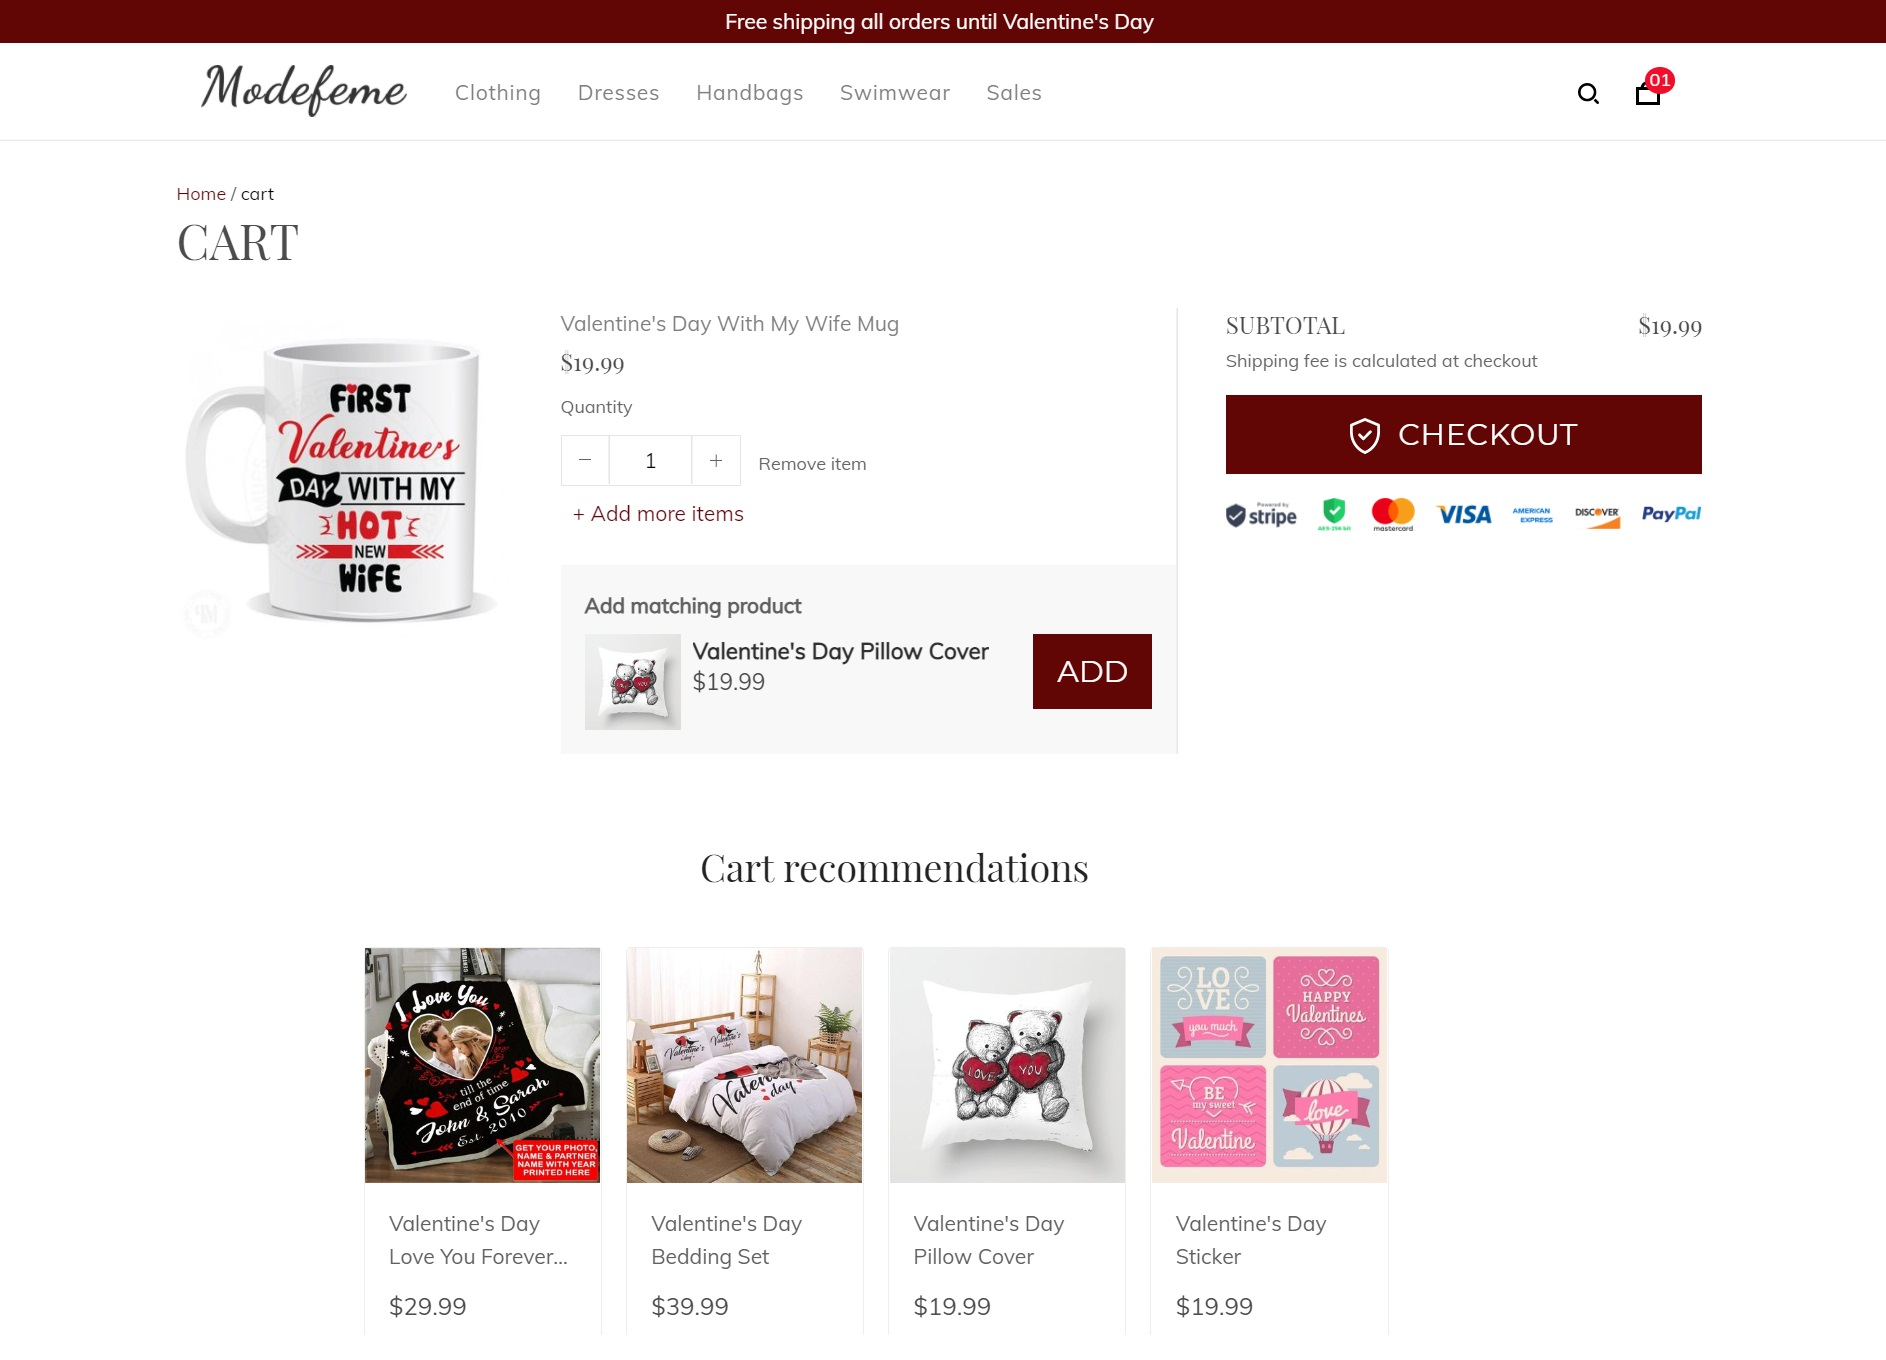 Suggested items in their cart page